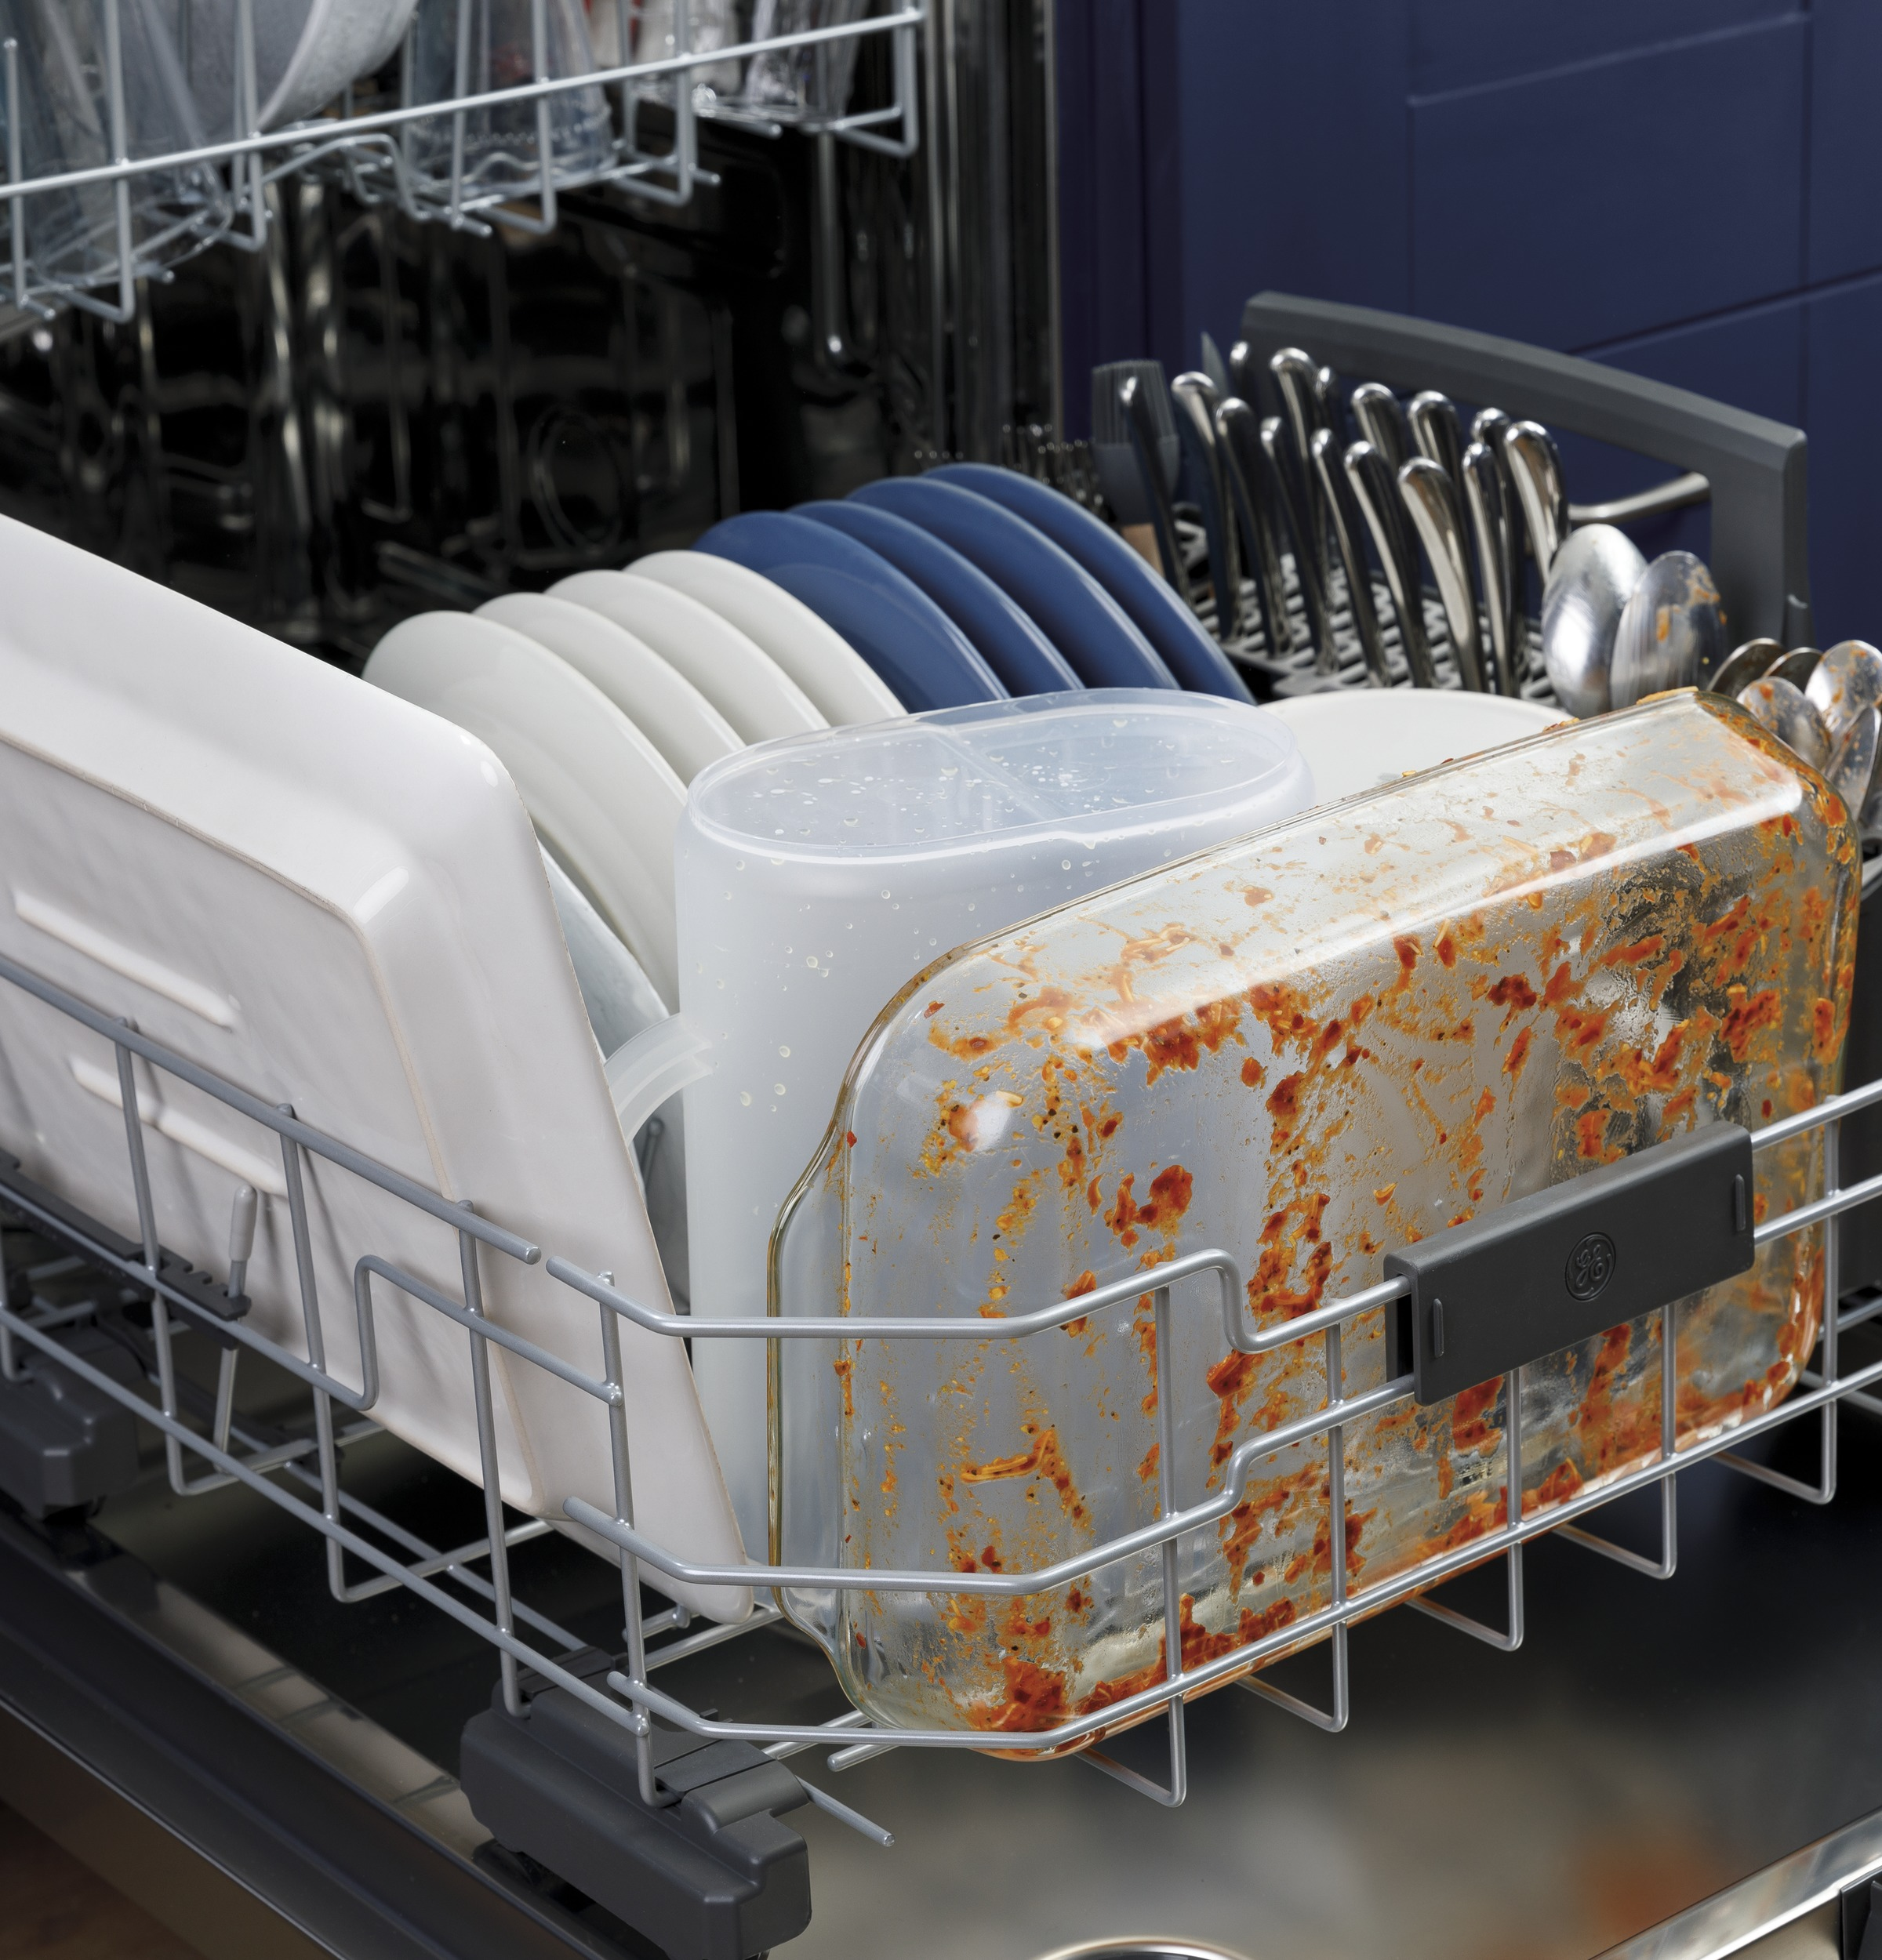 Model: GDF565SSNSS | GE GE® Stainless Steel Interior Dishwasher with Front Controls